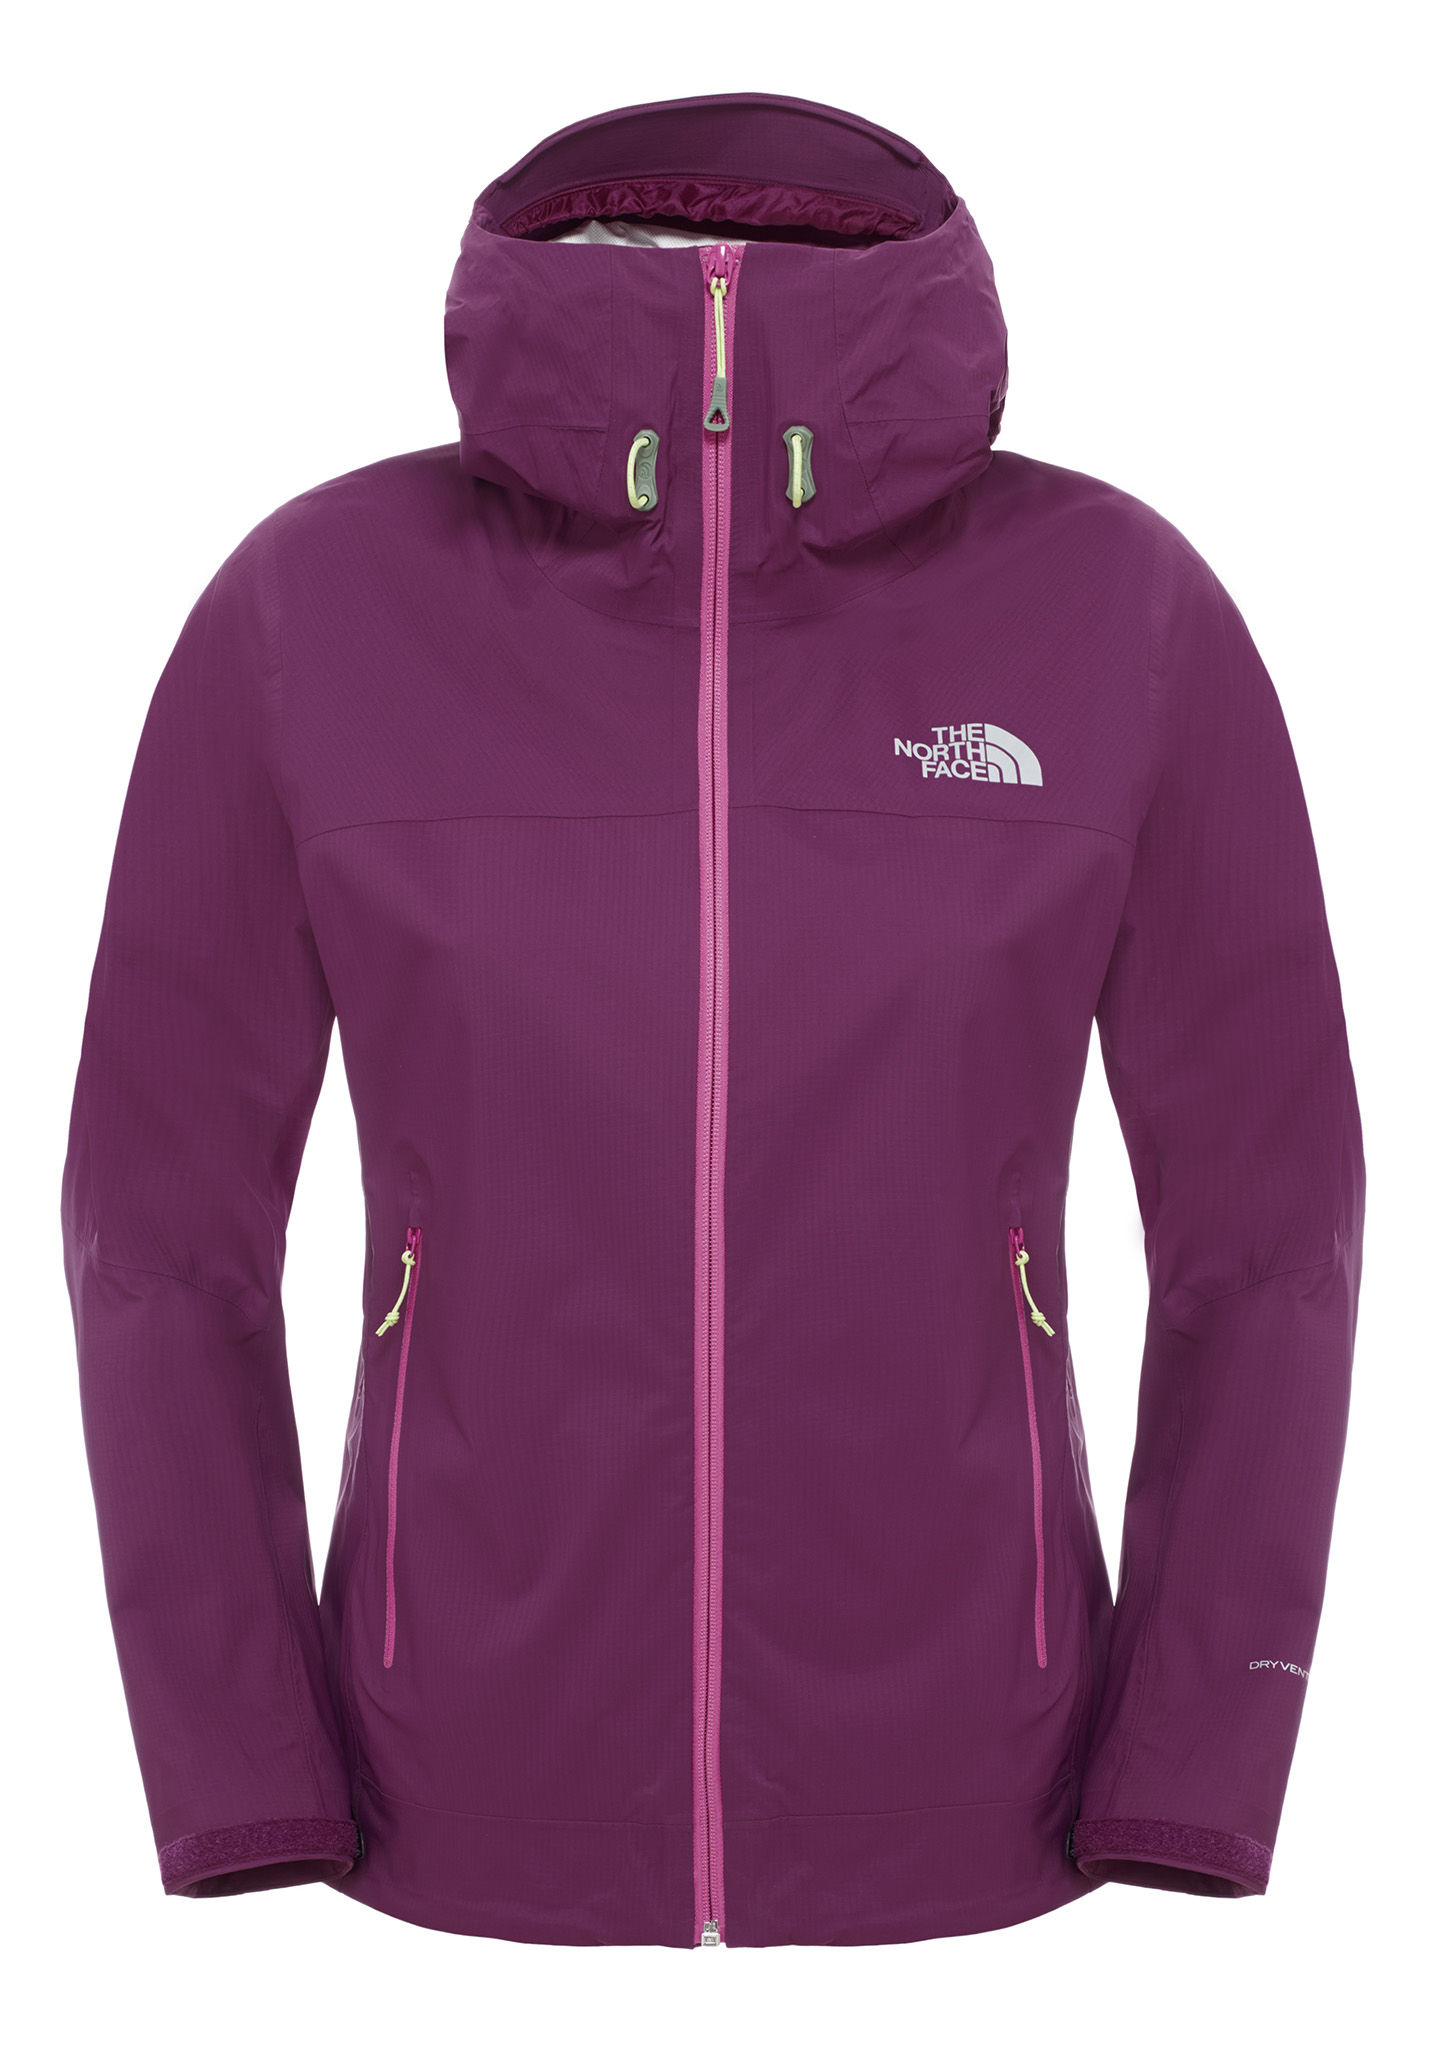 9540cff4a8 THE NORTH FACE Diad - Functional Jacket for Women - Purple - Planet Sports  ...